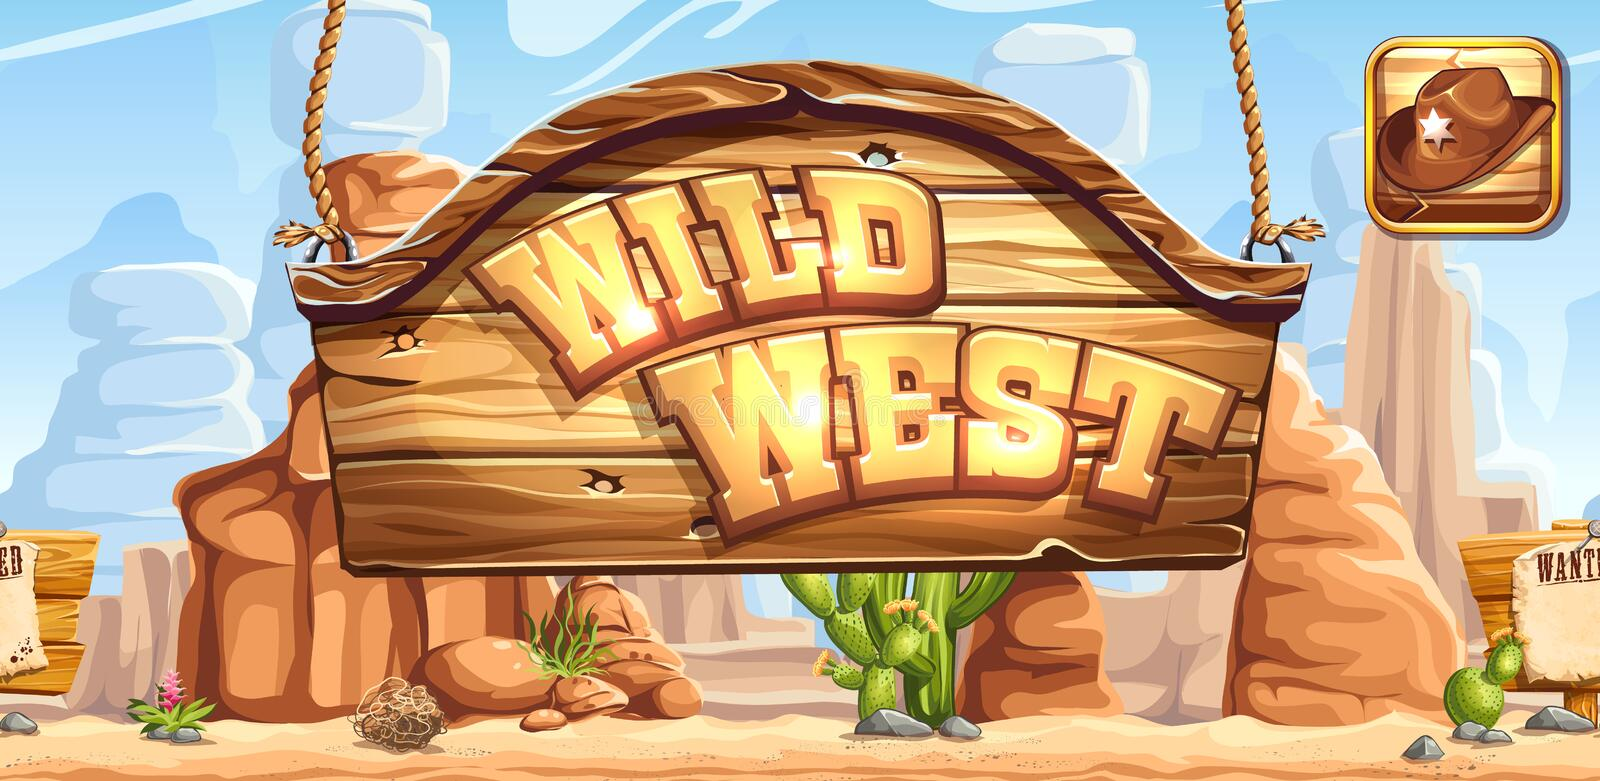 Horizontal banner and icon for the game Wild West registration in social networks royalty free illustration